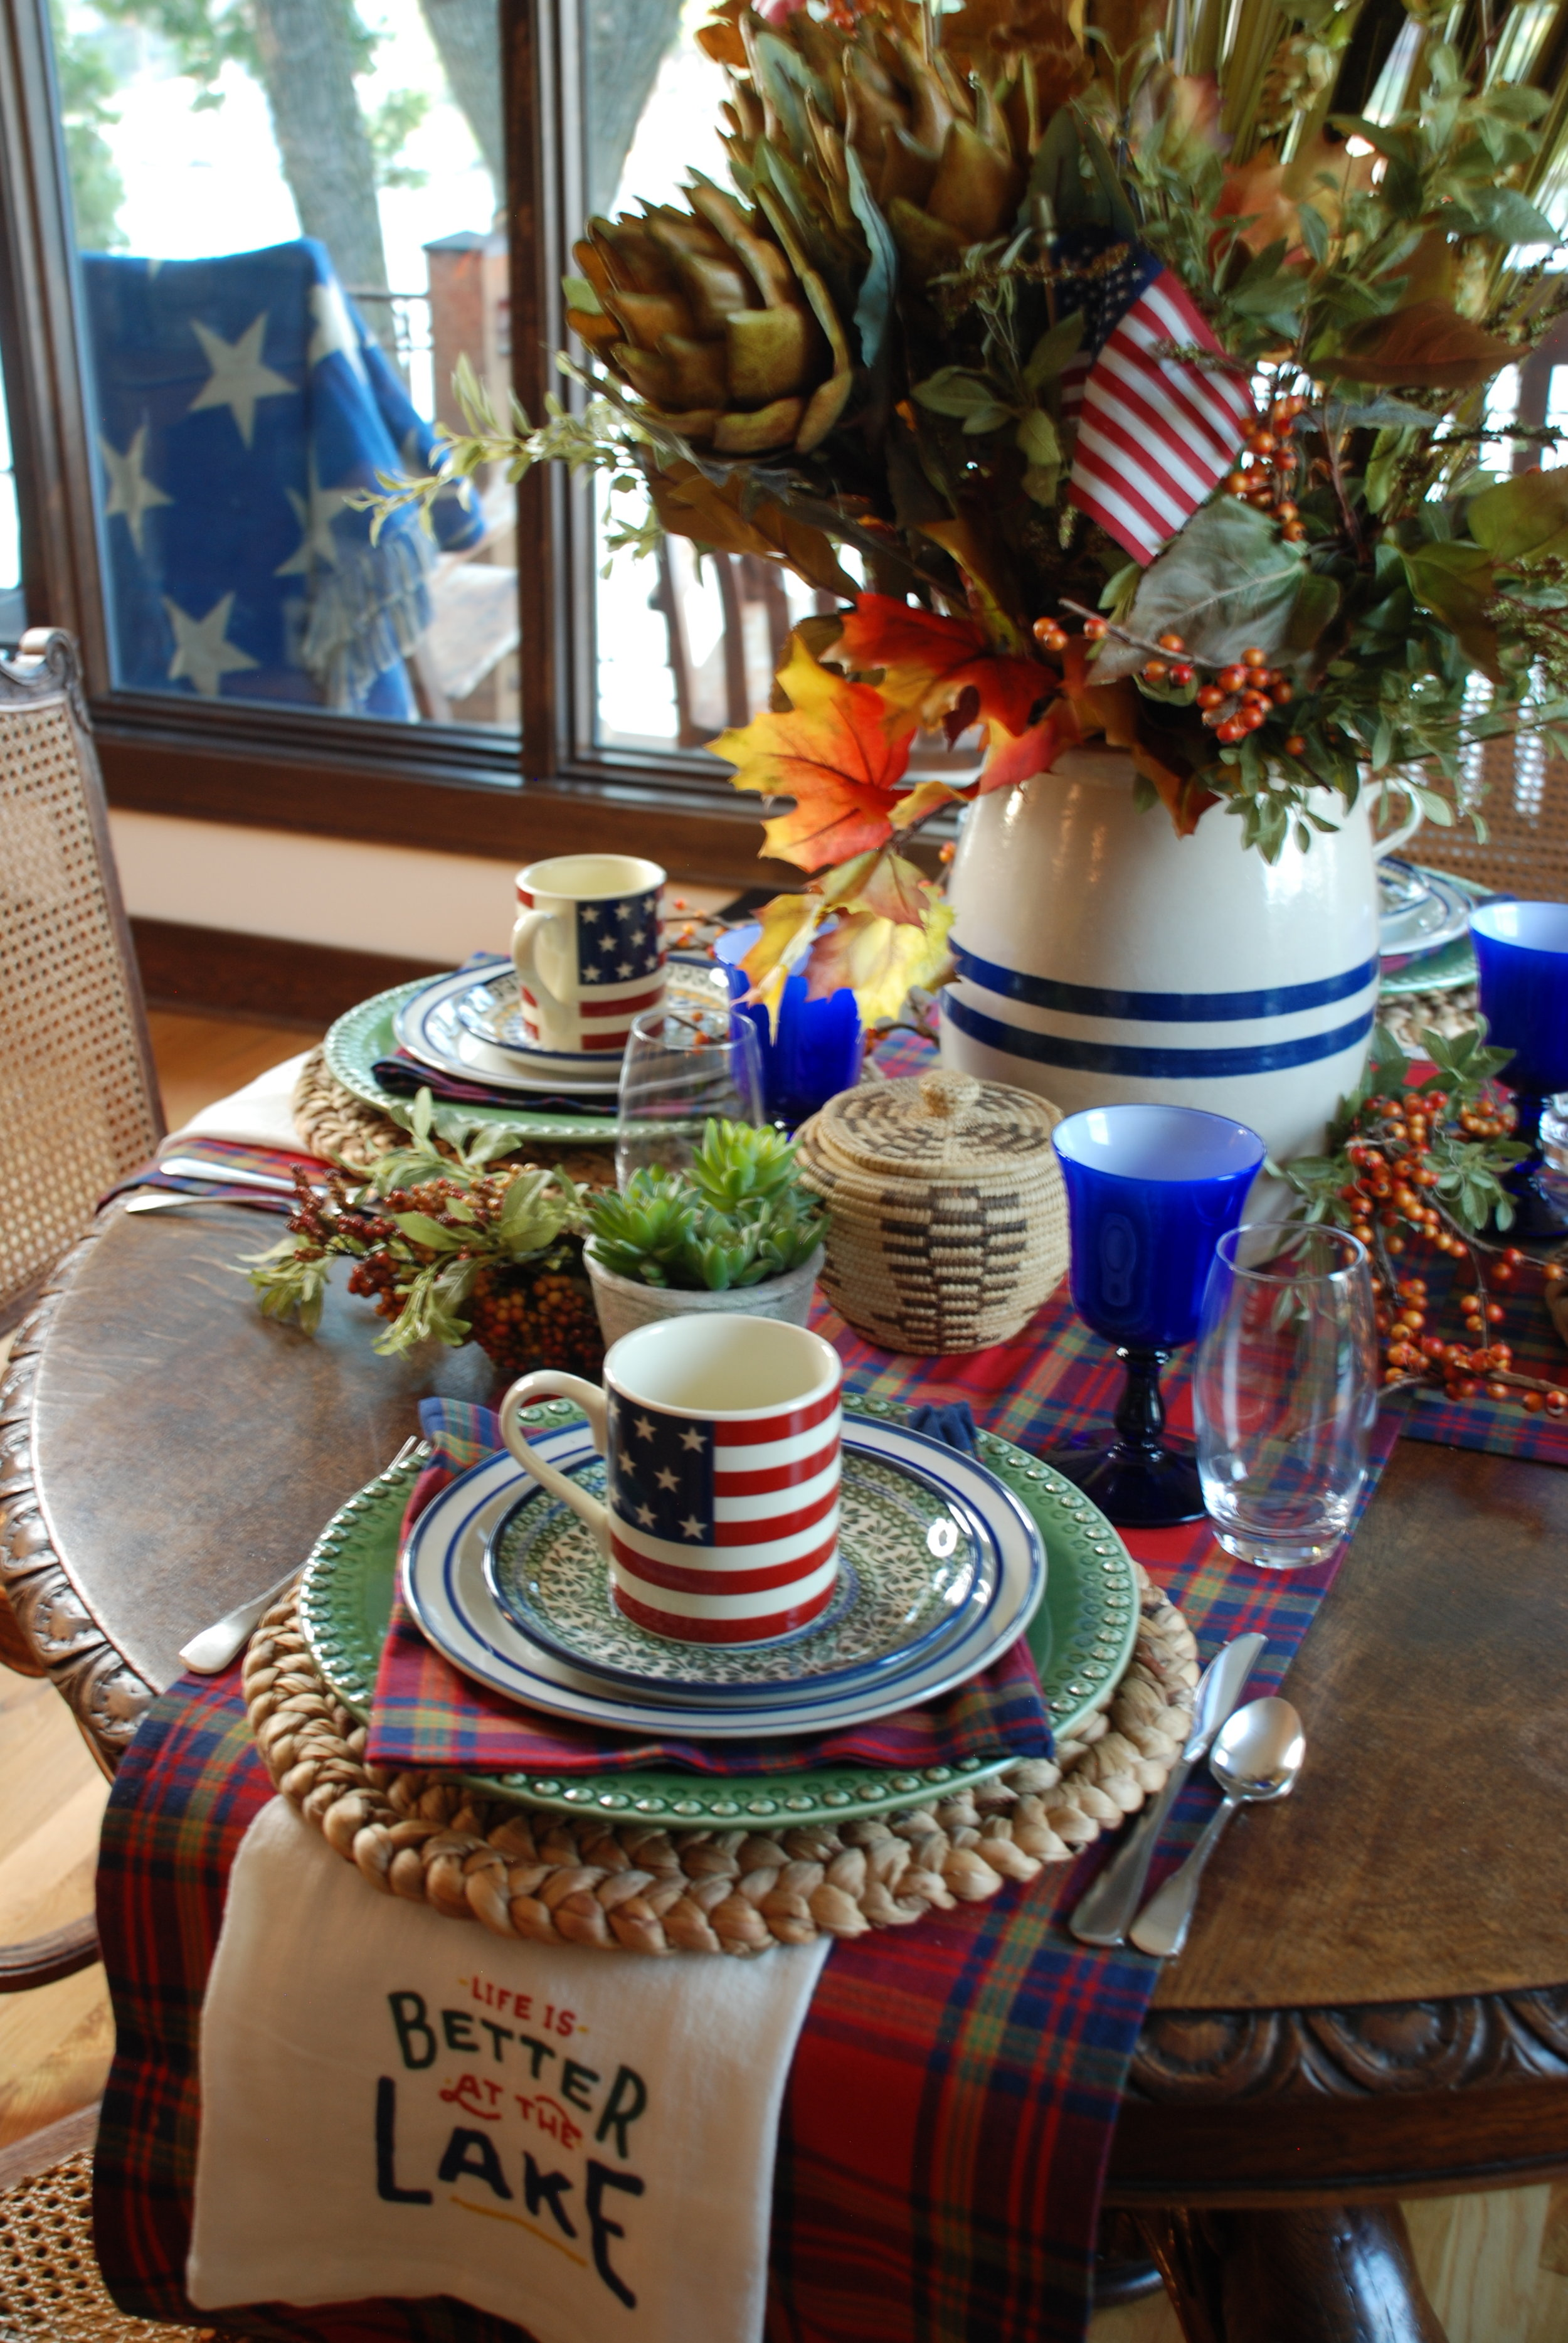 I love the mix of fall foliage with plaid and patriotic themes for Labor Day. Last chance to enjoy the red, white and blue on a 2018 holiday (unless, of course, you are partial to an Americana Christmas tree). (Smile!!)